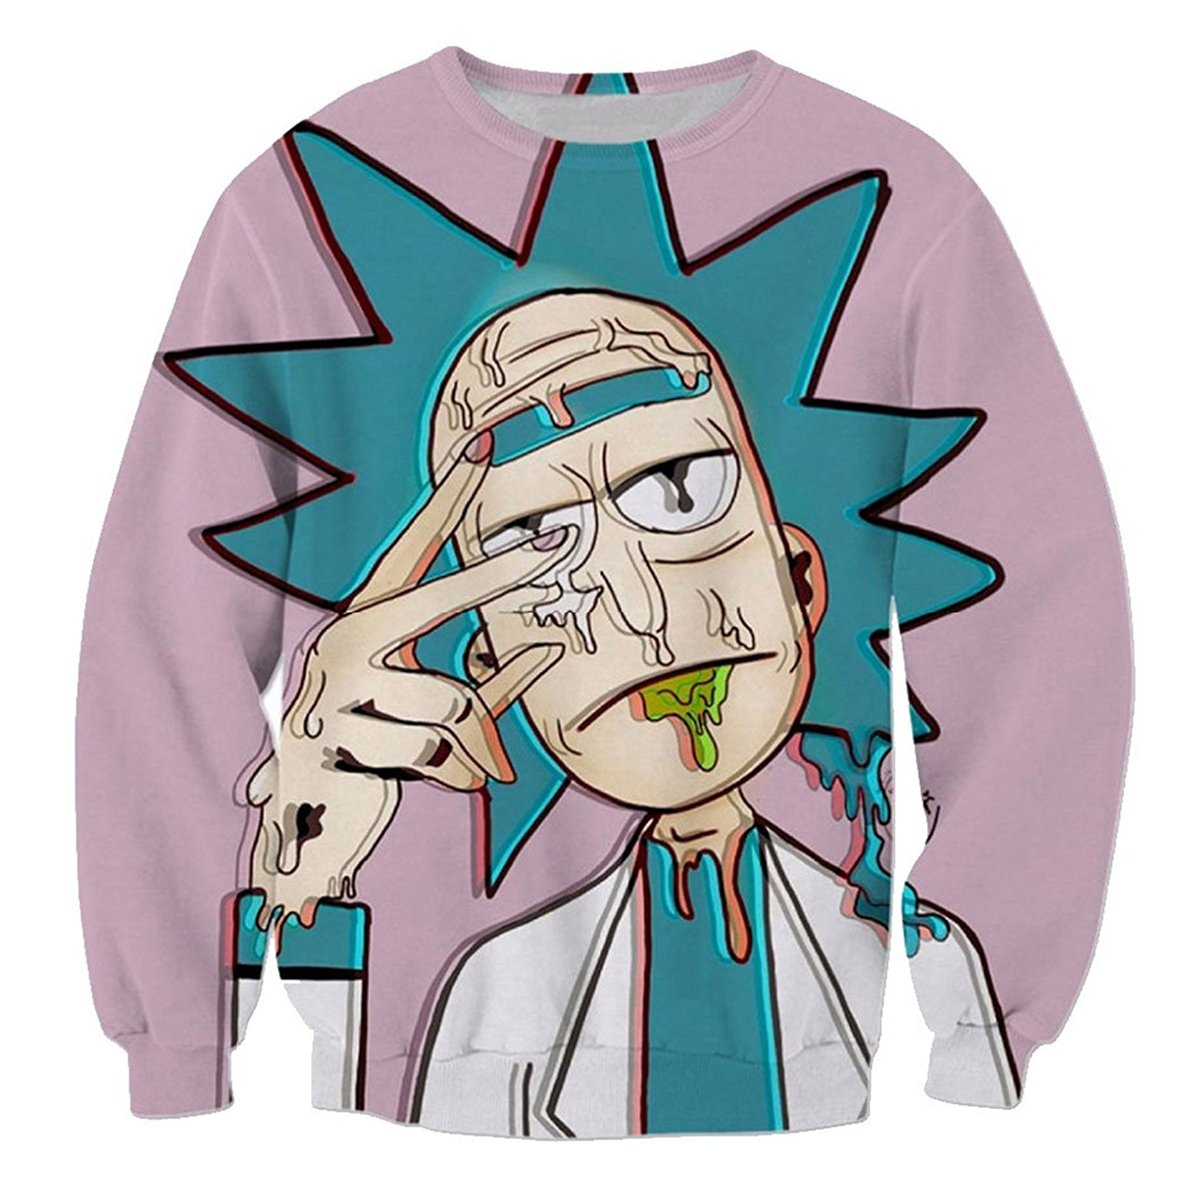 Unisex Rick and Morty 3D Printed Tops Fashion Sweatshirts With Two Side Pocket and Long Sleeves by XXDM-tops (Image #1)